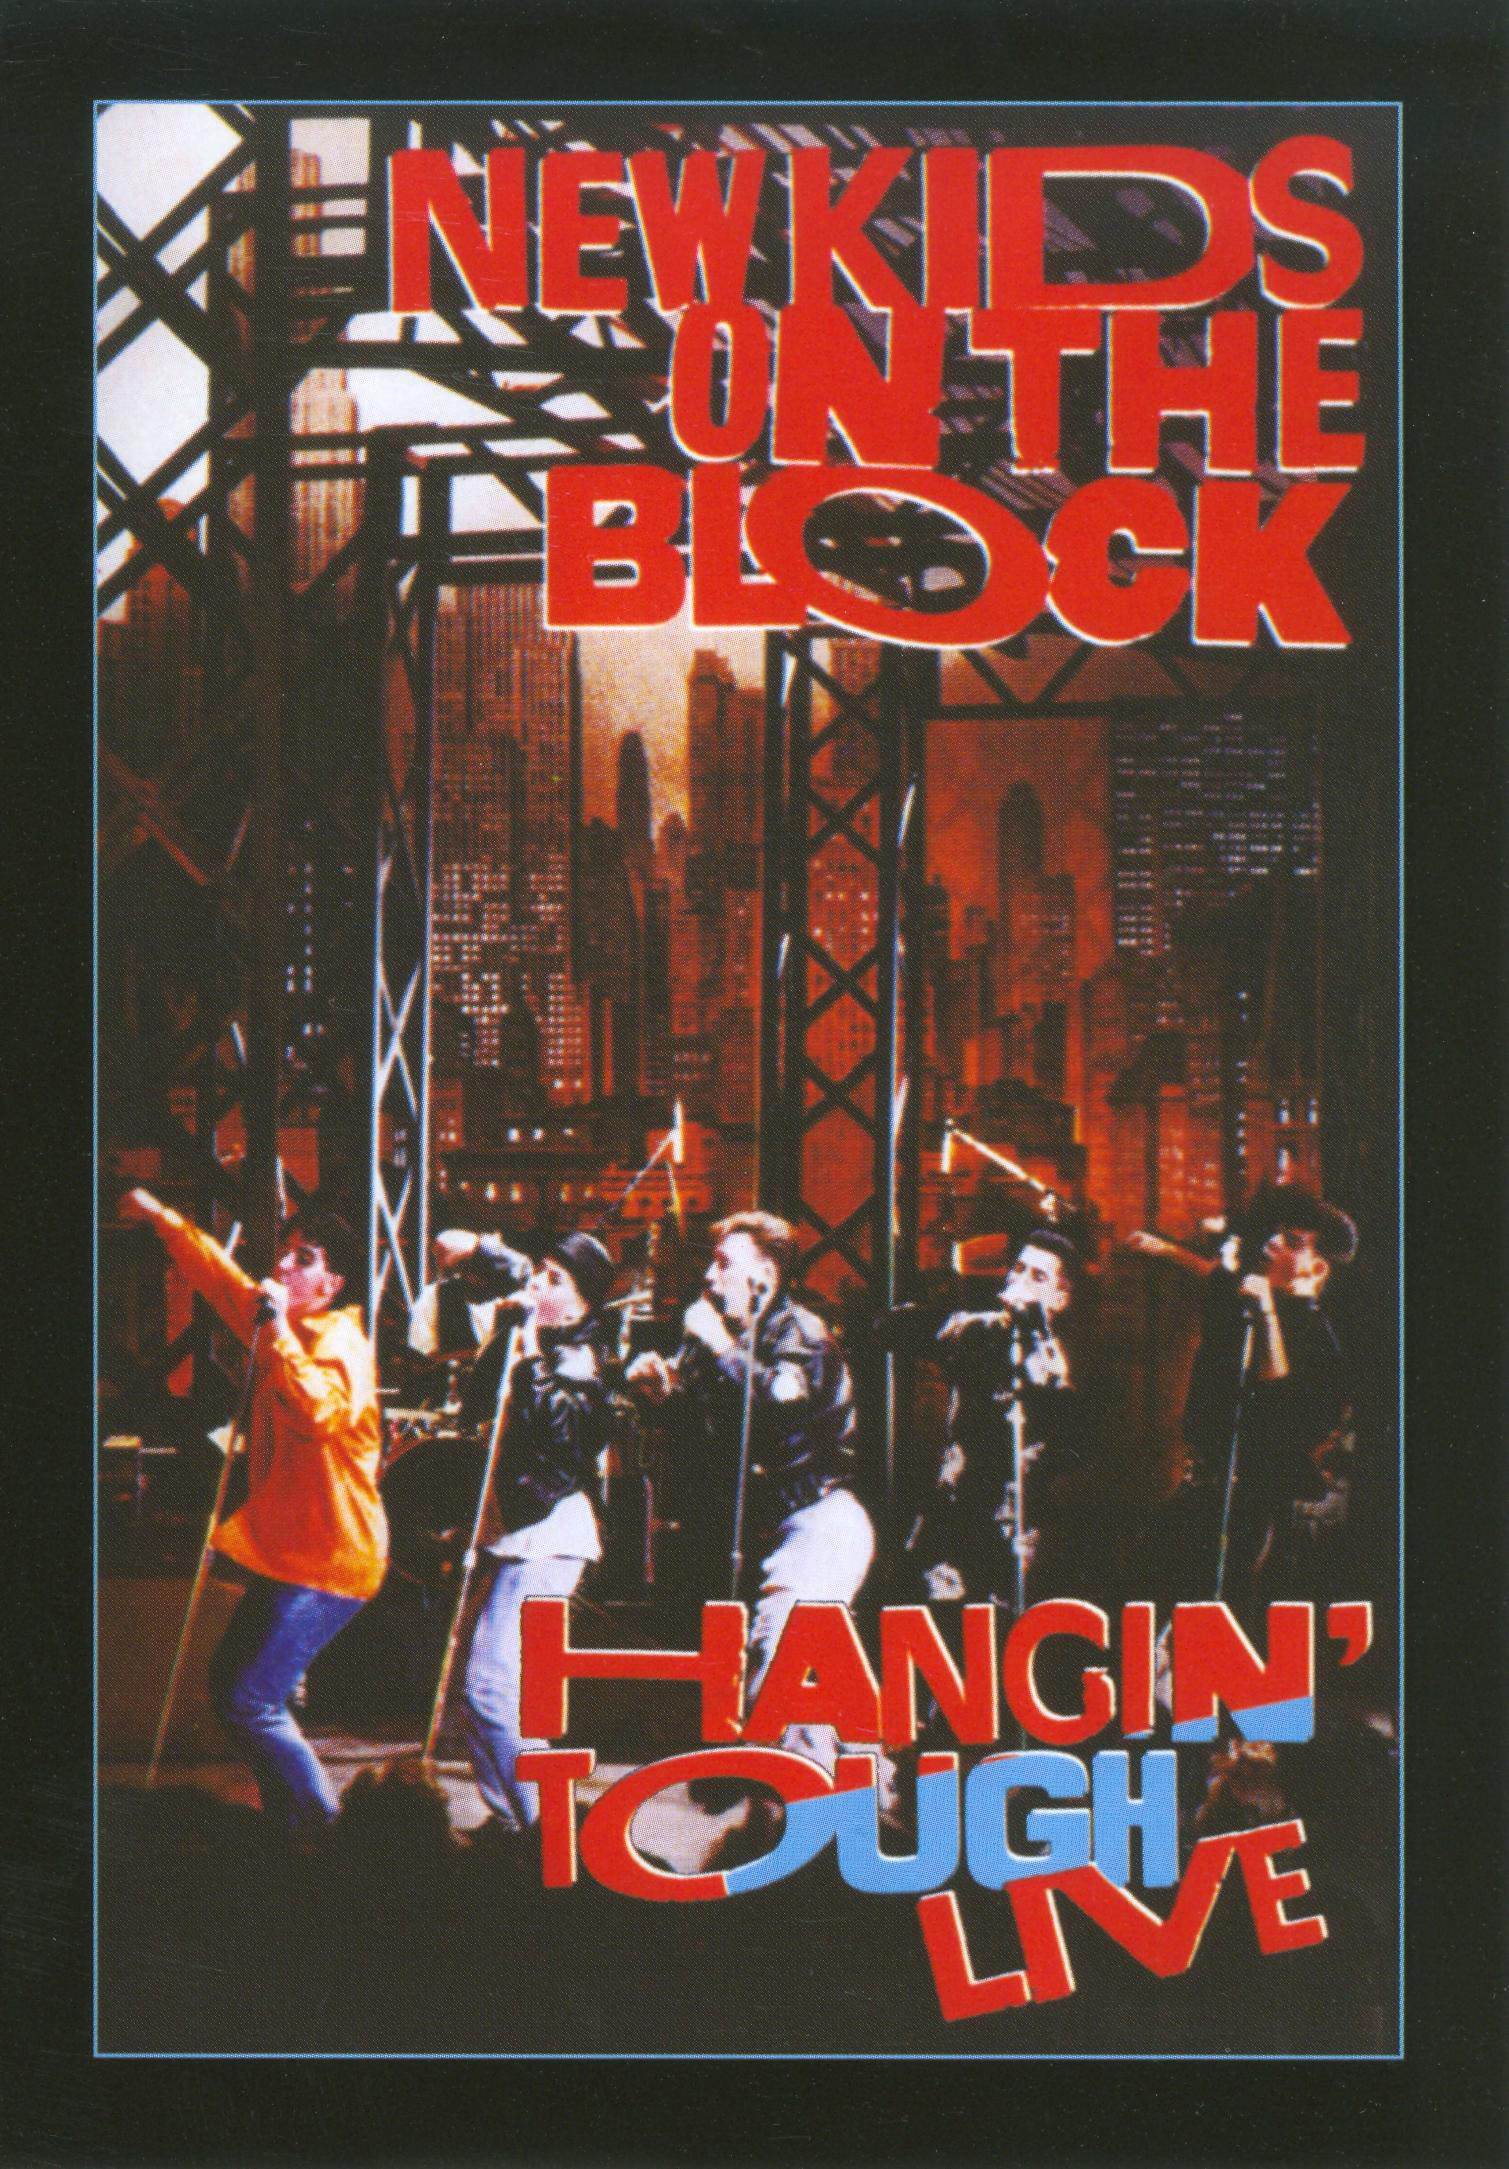 New Kids on the Block: Hangin' Tough Live